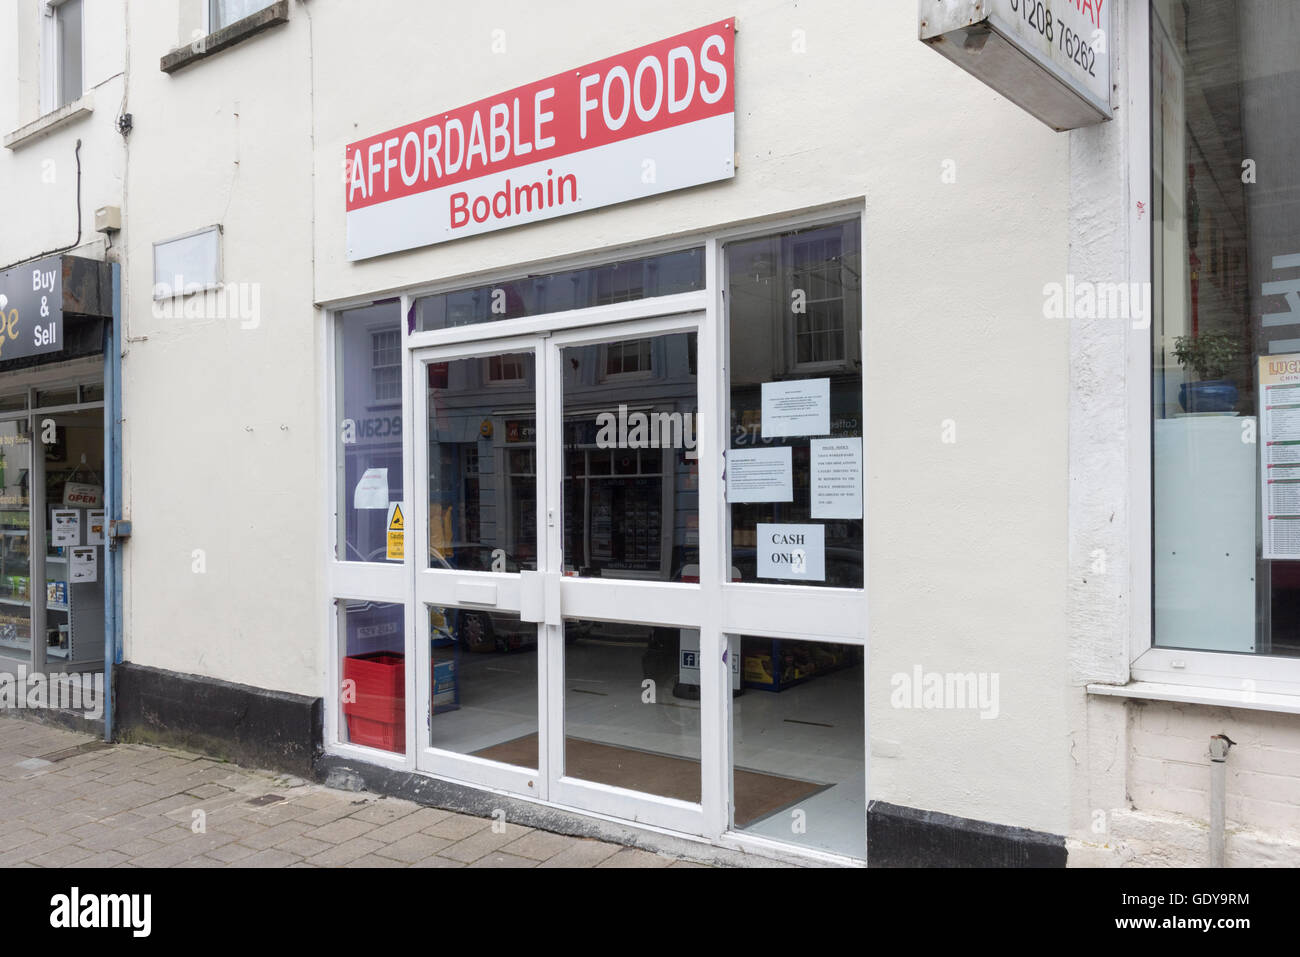 Affordable Foods Shop selling everything at 25 pence in Bodmin Cornwall UK. A discounted food shop - Stock Image